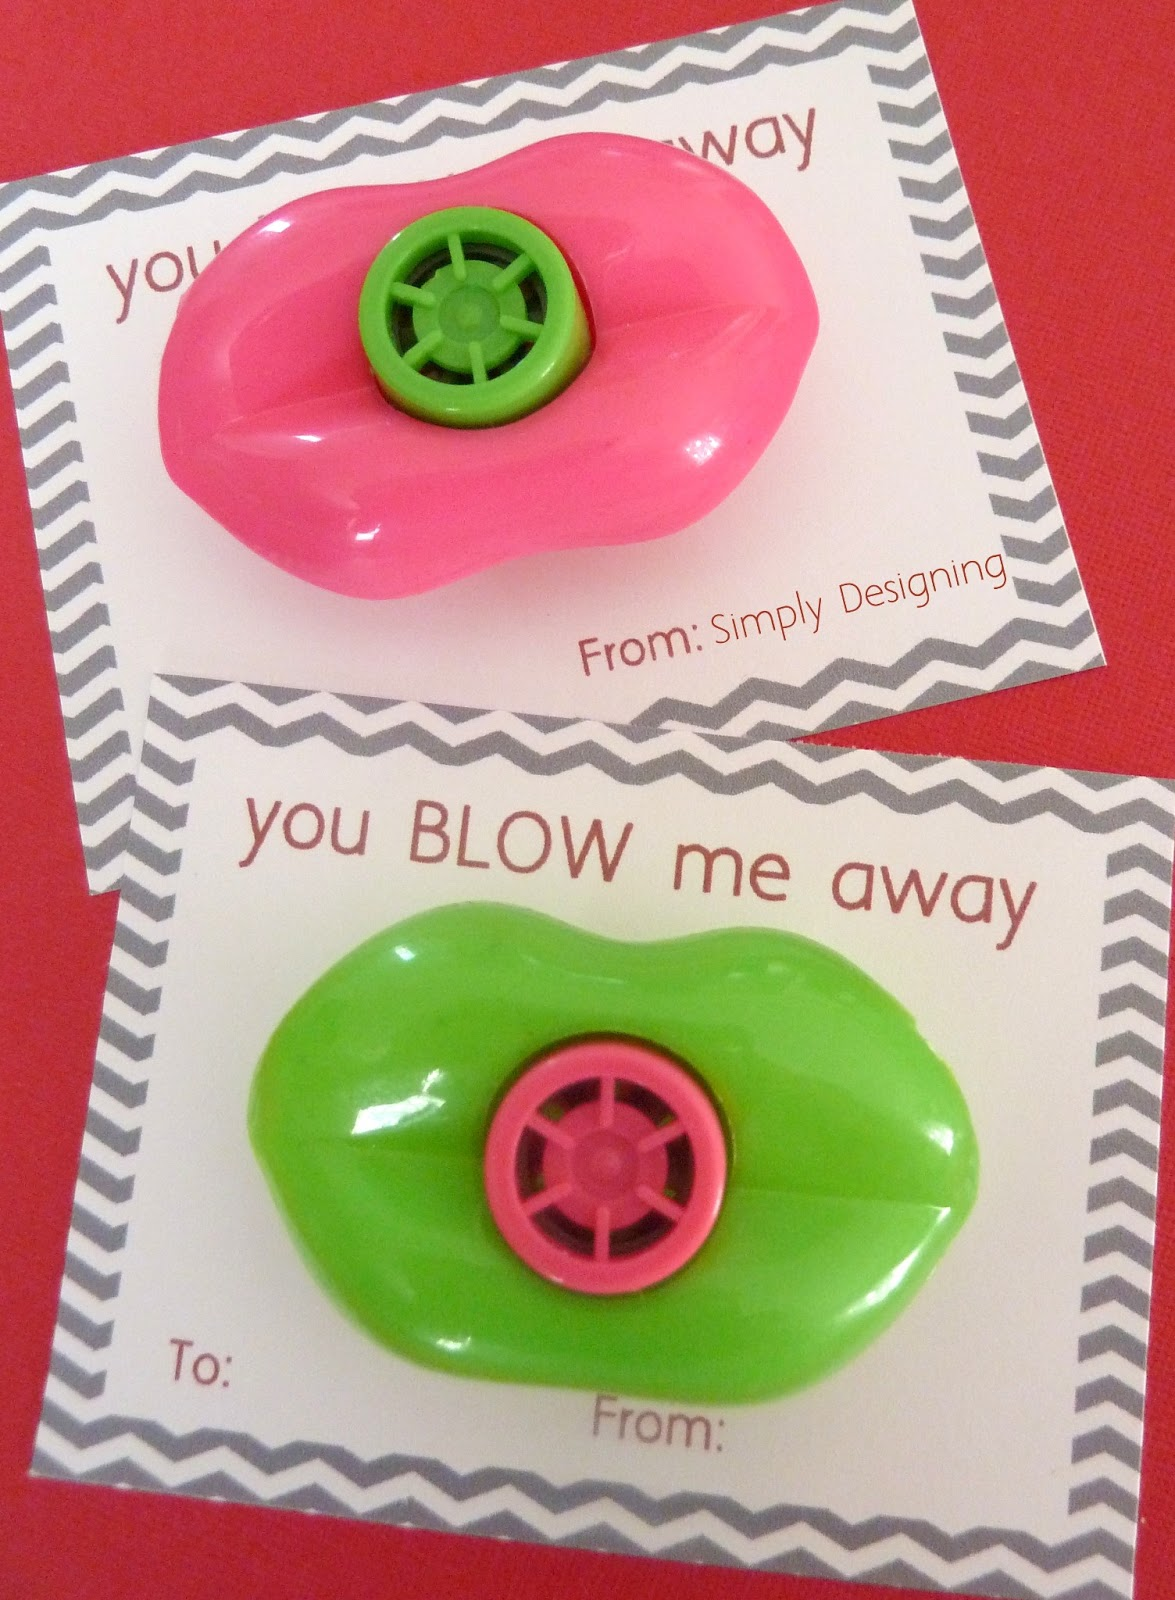 graphic regarding You Blow Me Away Valentine Printable referred to as By yourself BLOW Me Absent Valentine Cost-free Printable